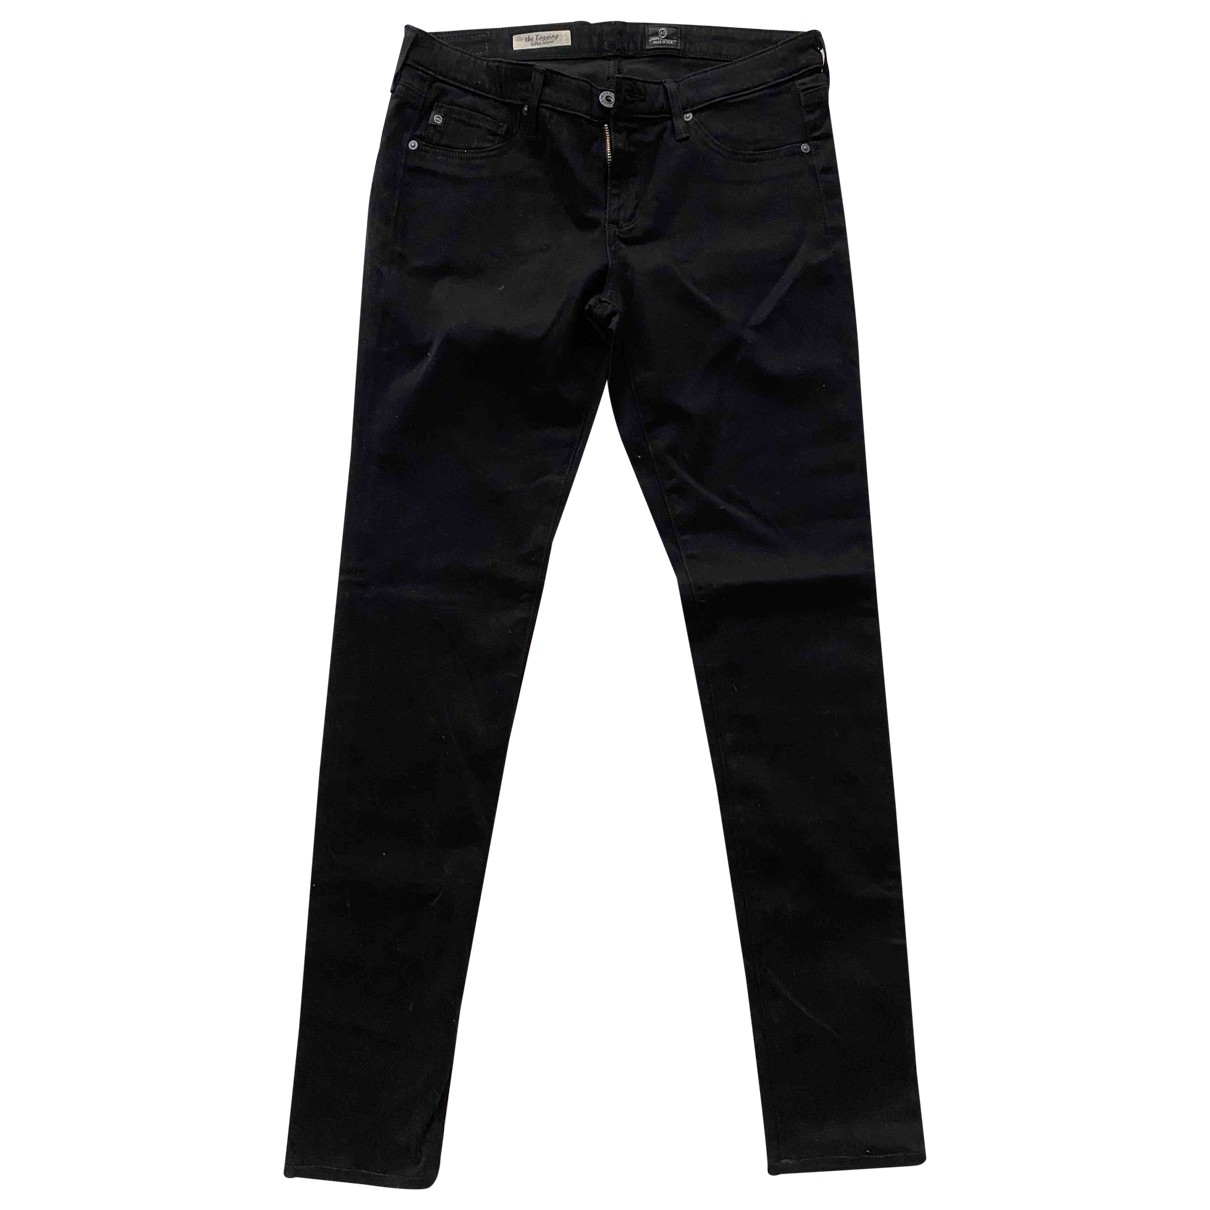 Adriano Goldschmied \N Black Cotton Jeans for Women 28 US